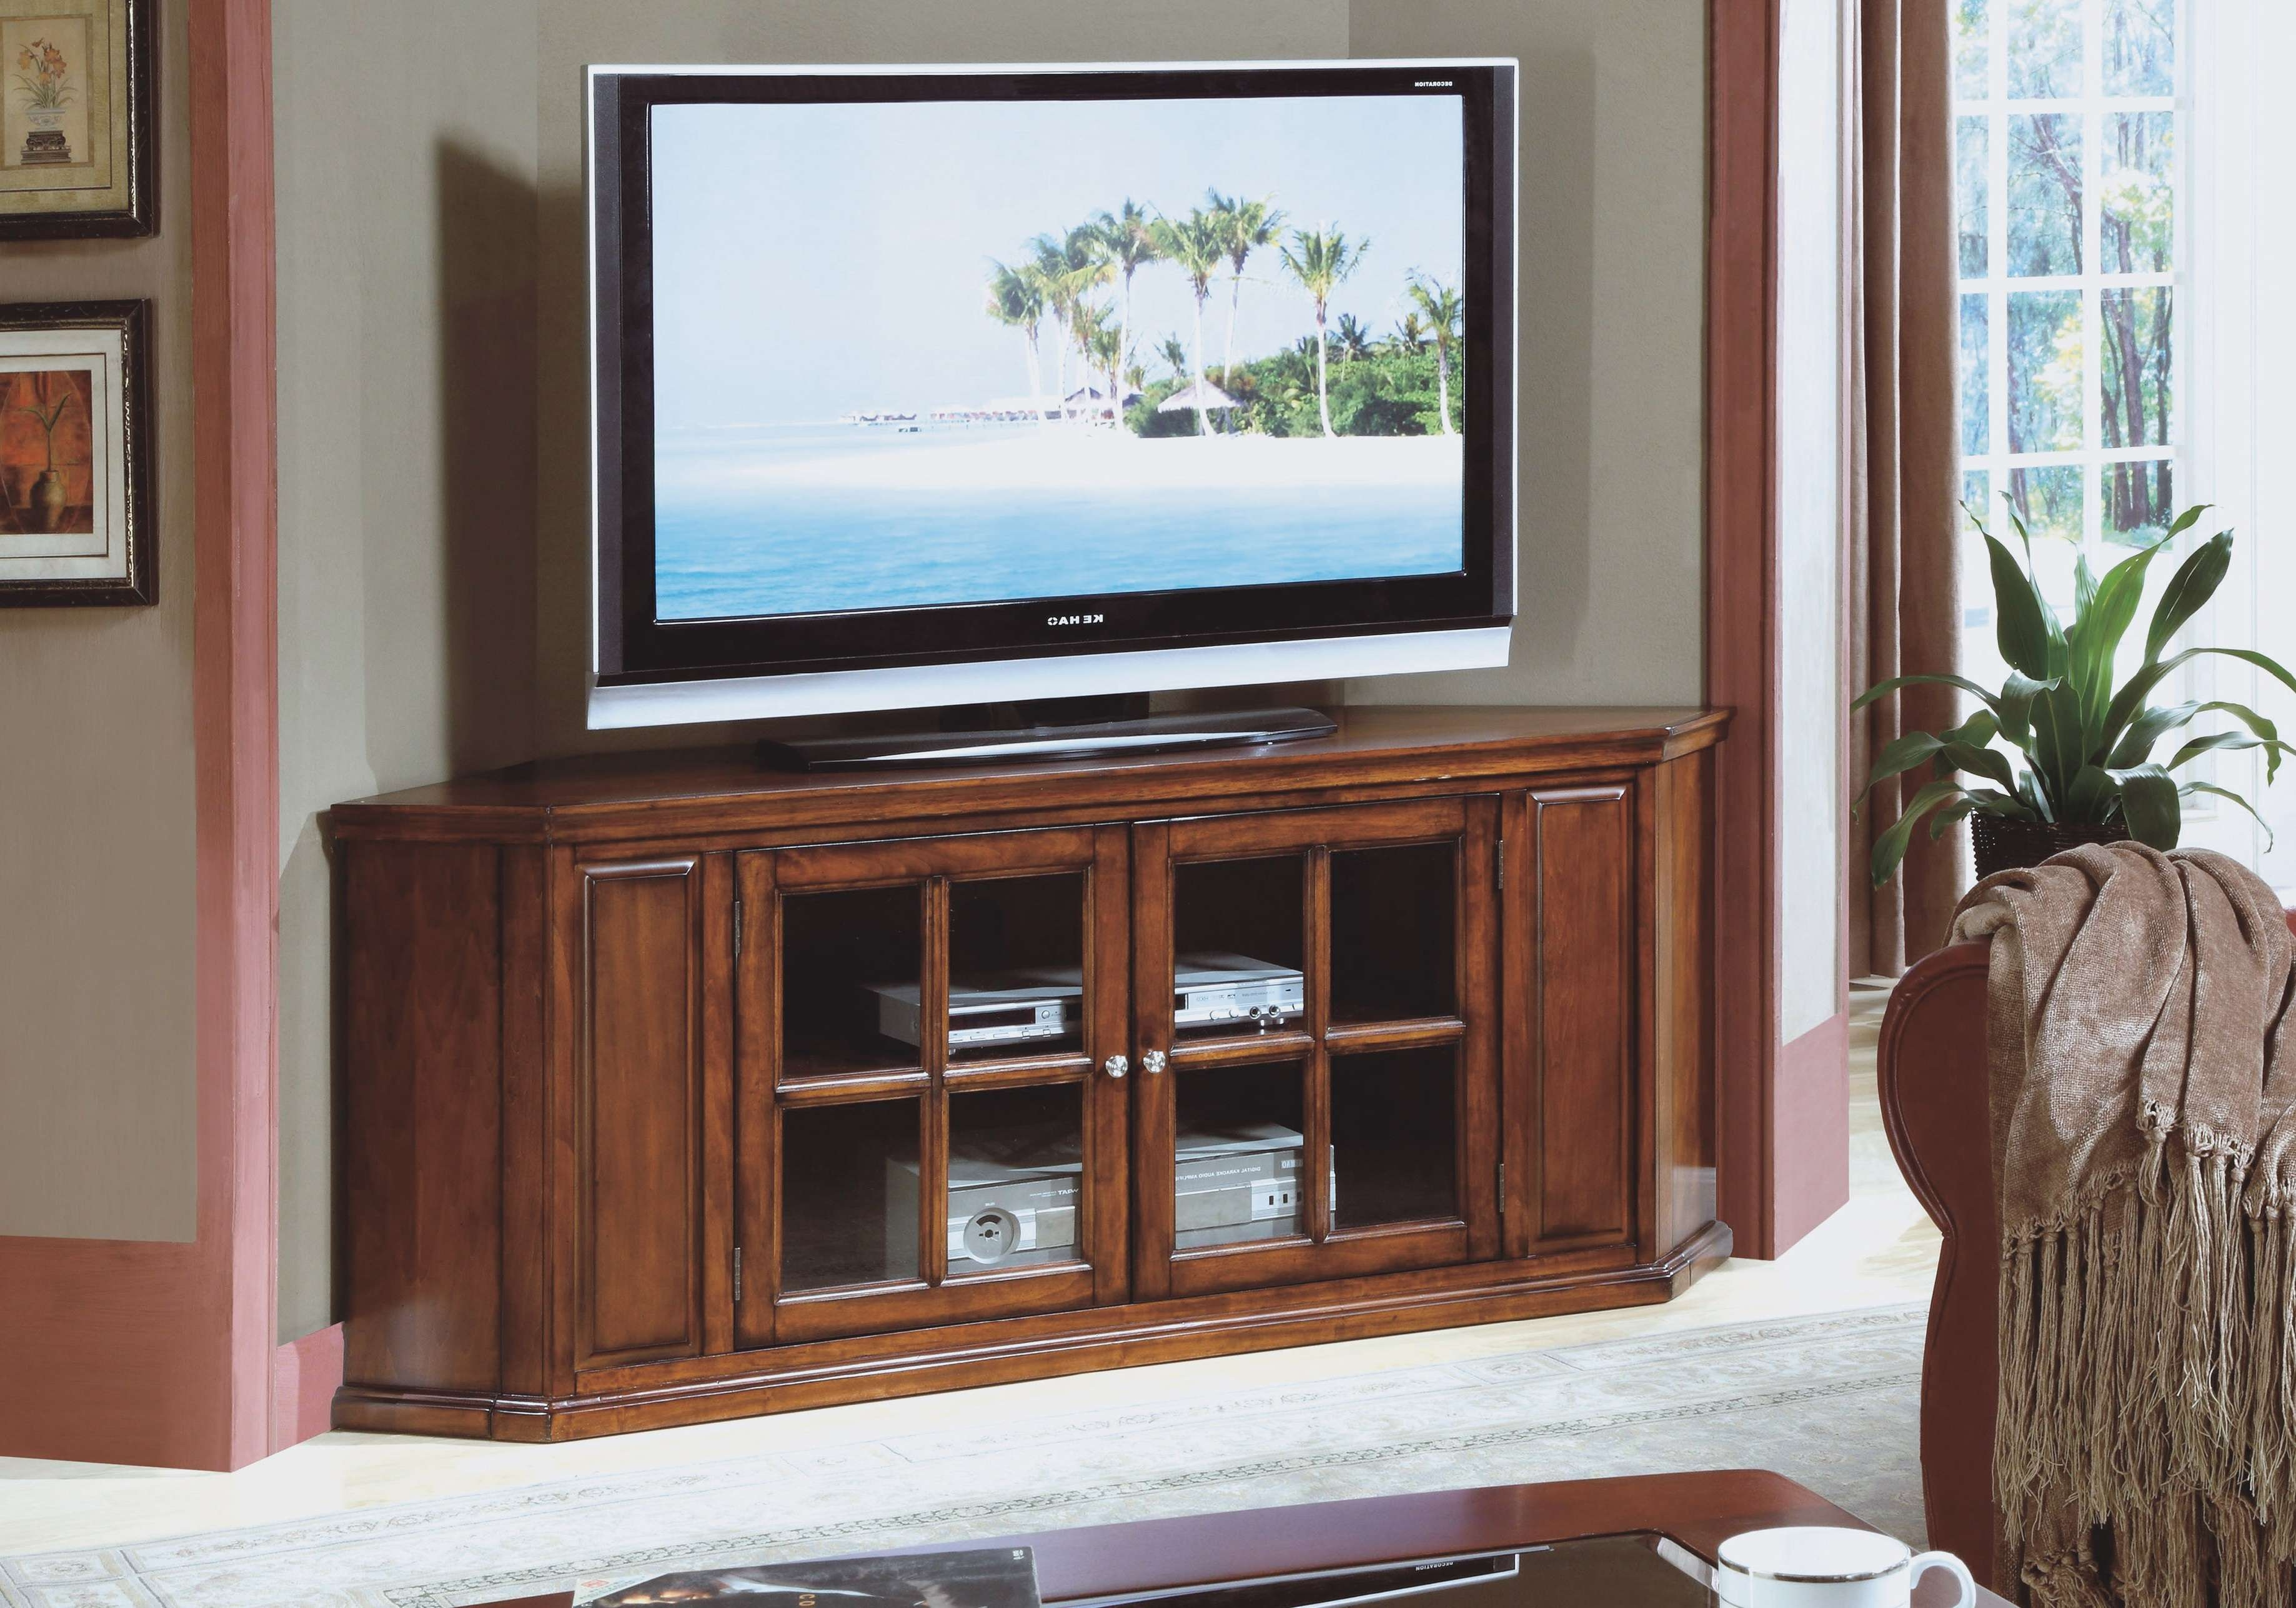 Corner Tv Cabinet For Flat Screens – Office Table With Regard To Corner Tv Cabinets For Flat Screens With Doors (View 4 of 20)